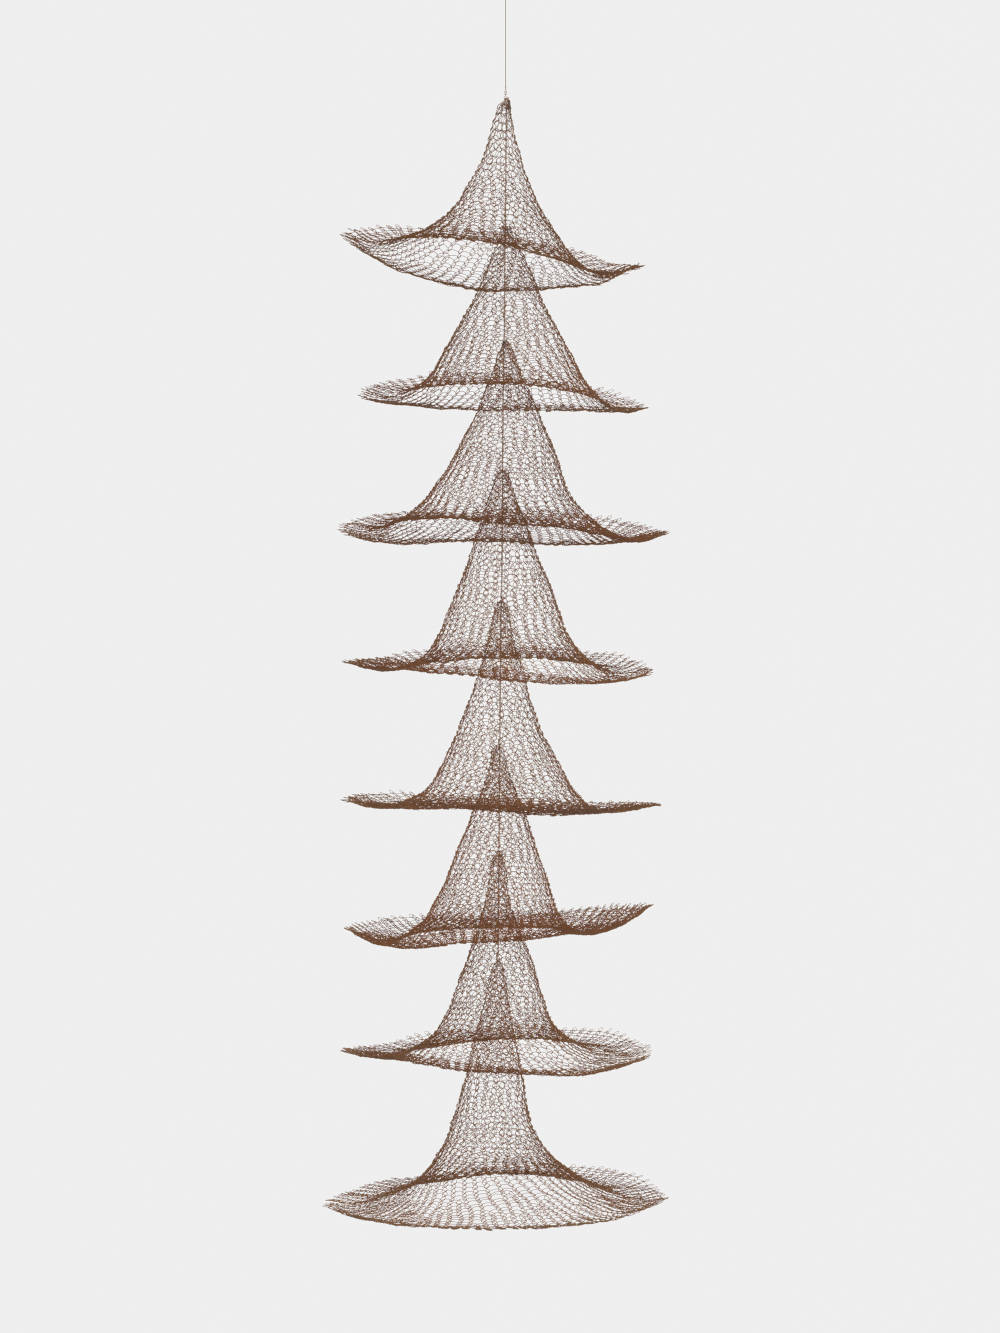 Untitled (S.030, Hanging Eight Separate Cones Suspended Through Their Centers)